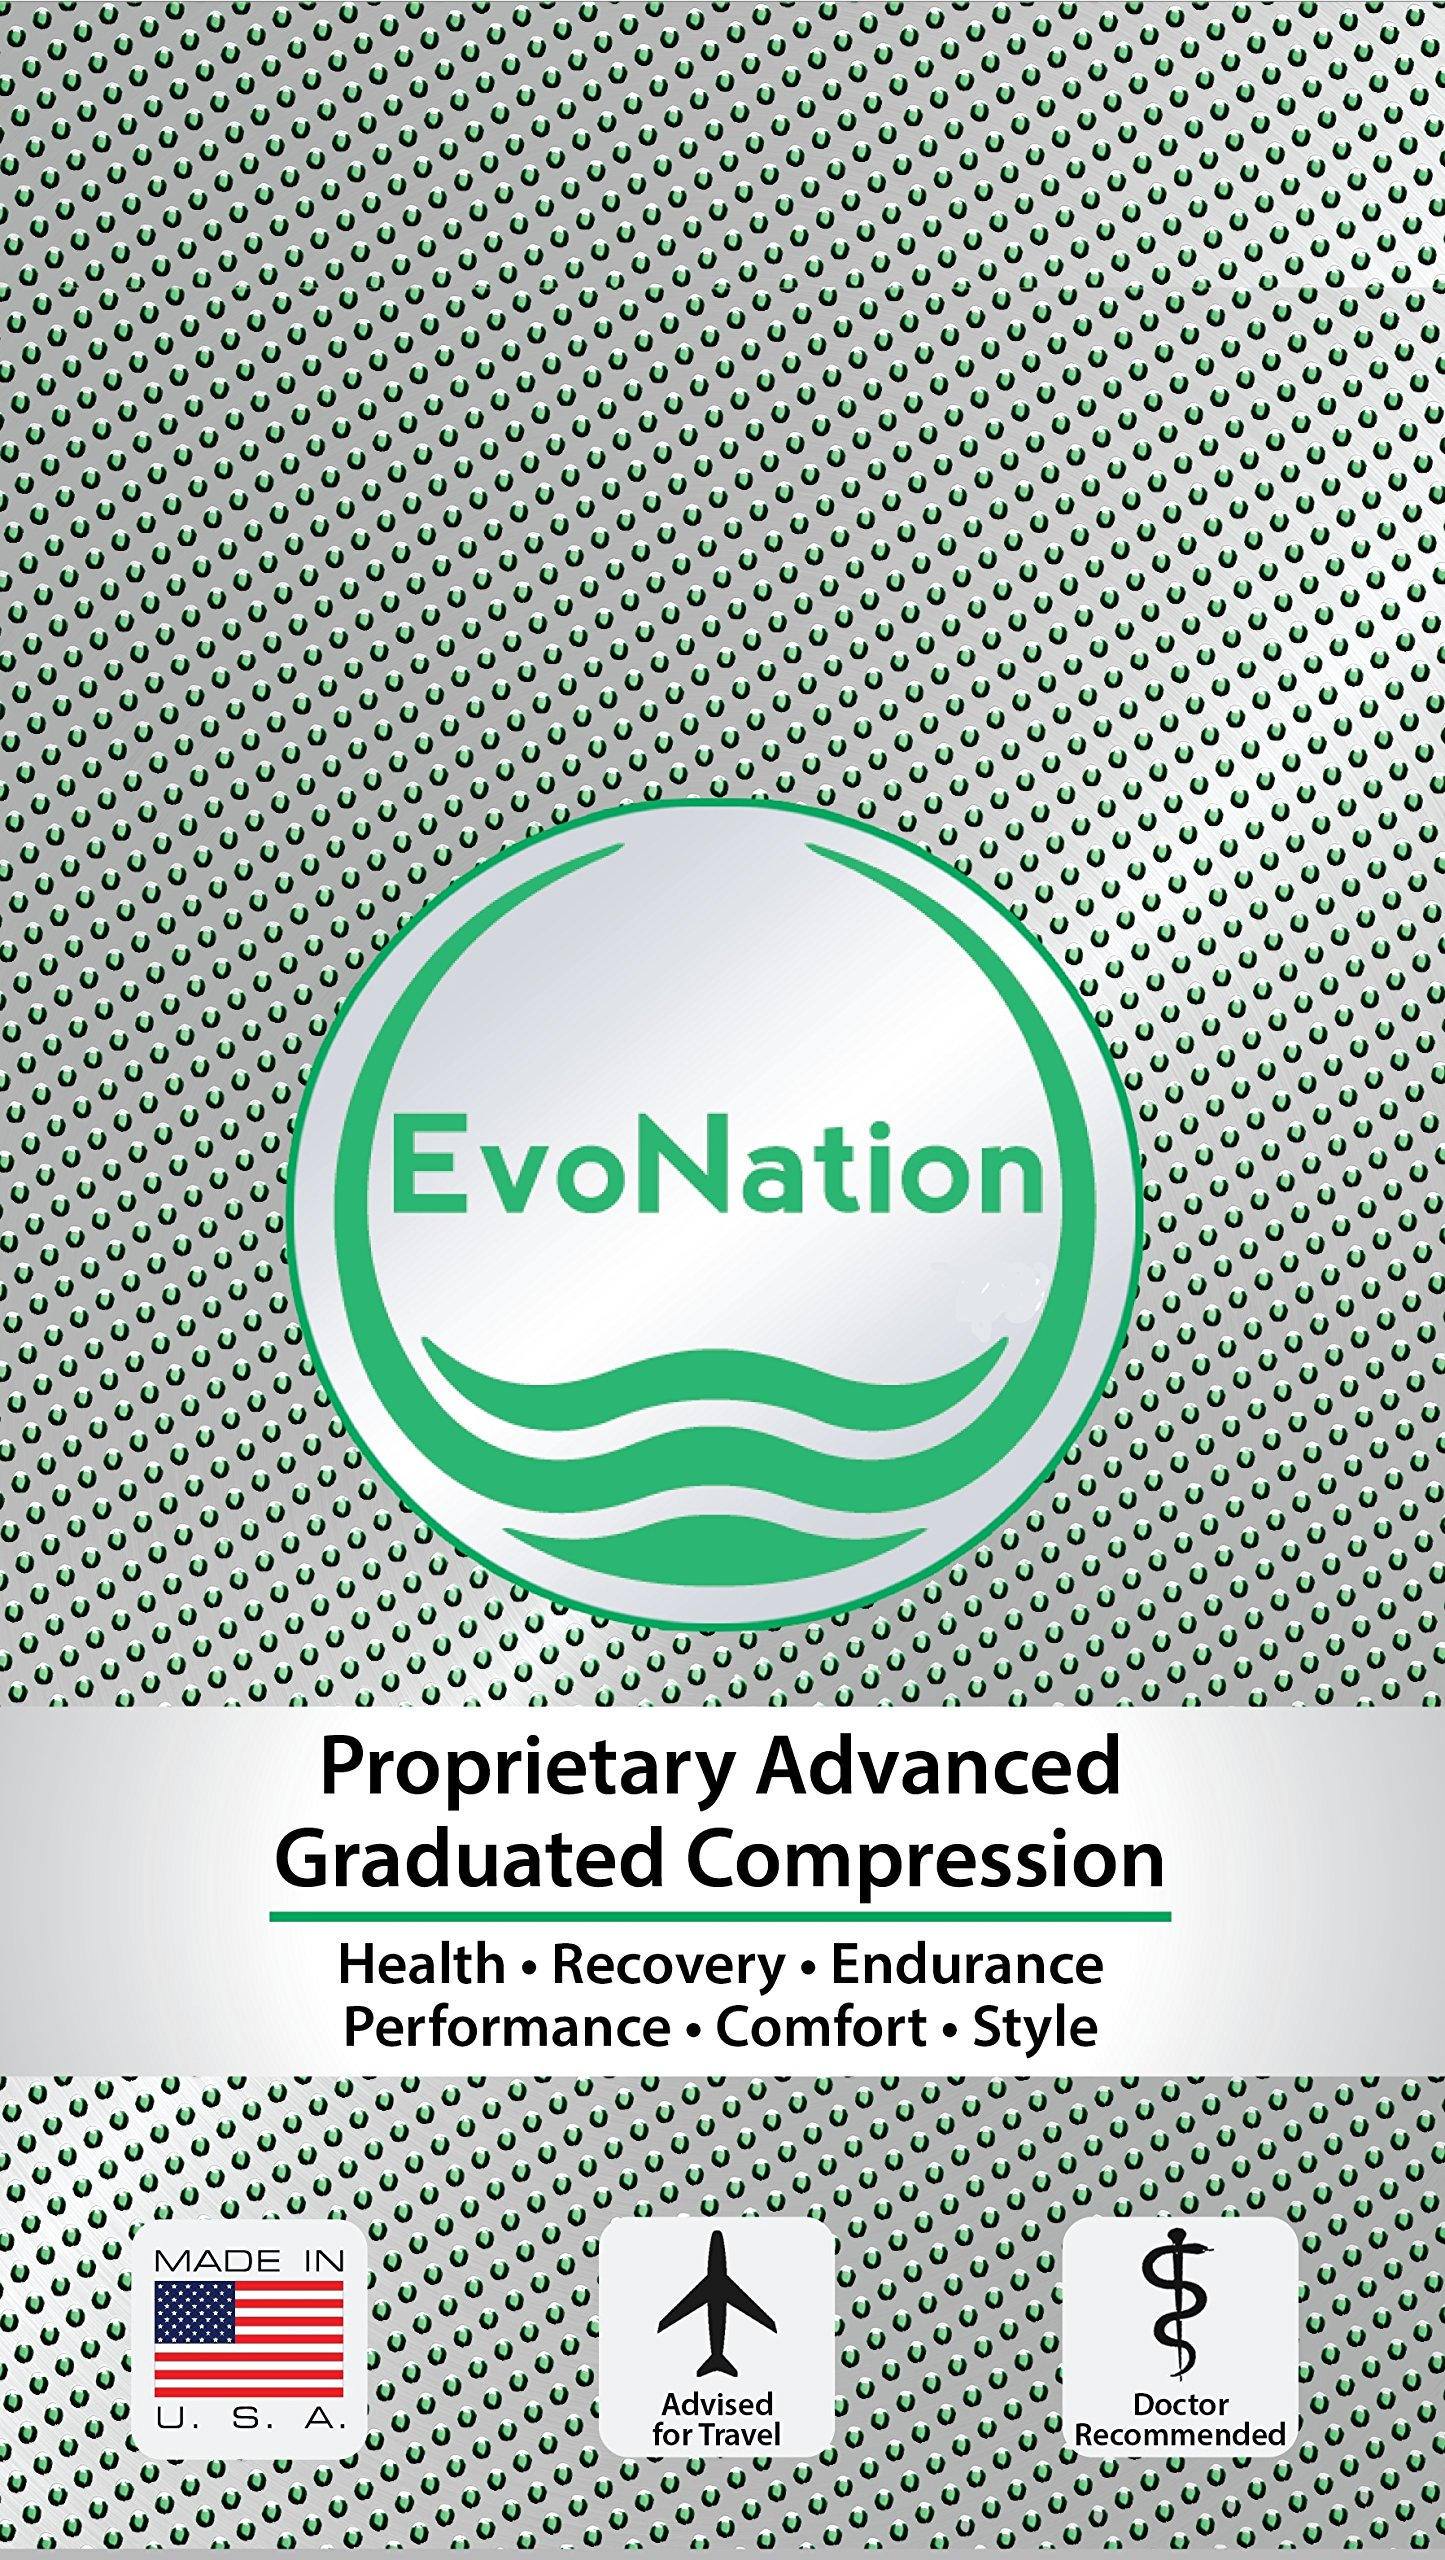 EvoNation Men's USA Made Graduated Compression Socks 20-30 mmHg Firm Pressure Medical Quality Knee High Orthopedic Support Stockings Hose - Best Comfort Fit, Circulation, Travel (Large, Gray) by EvoNation (Image #4)